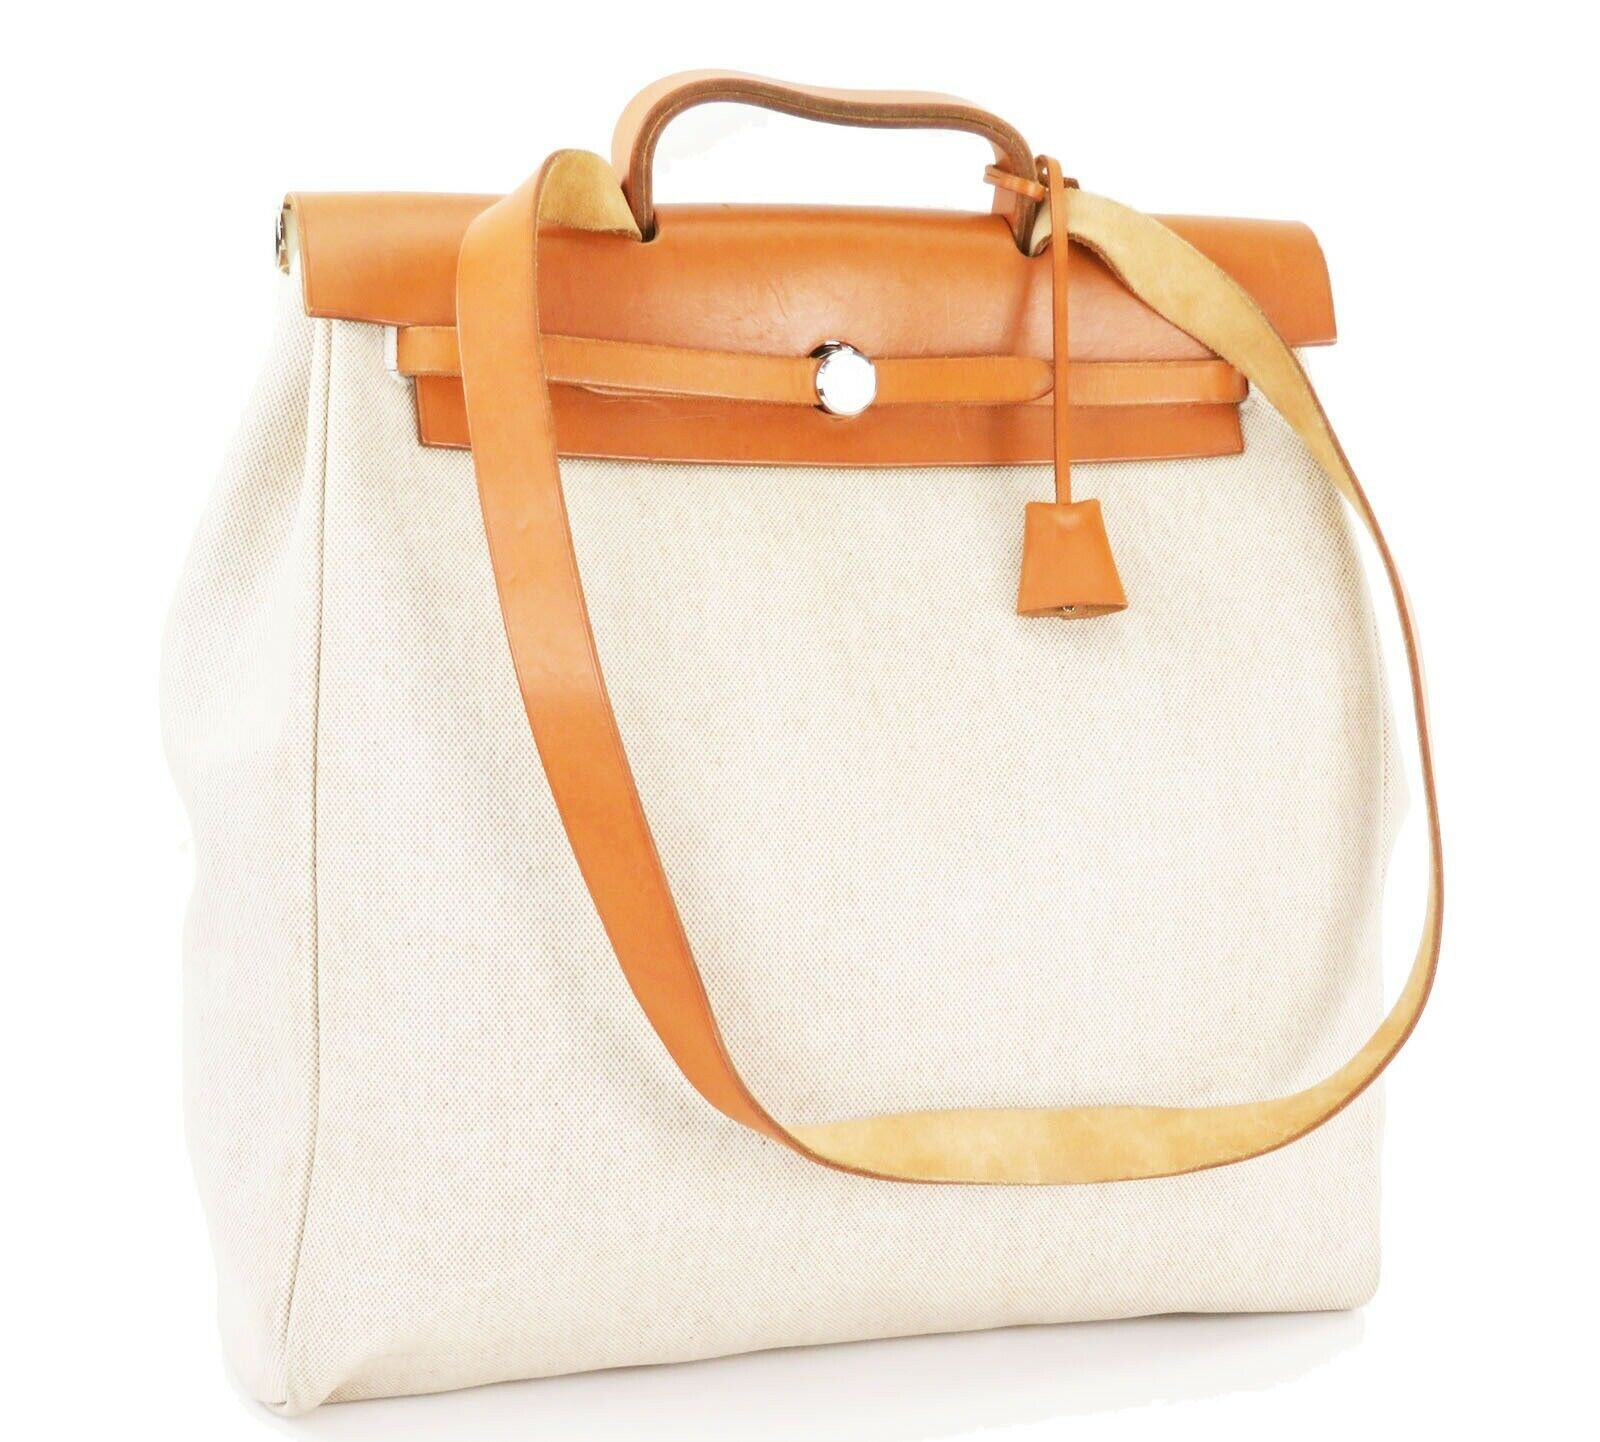 Auth HERMES Her Bag 2 in 1 Beige Canvas and Leather Hand Shoulder Bag #26110 image 2